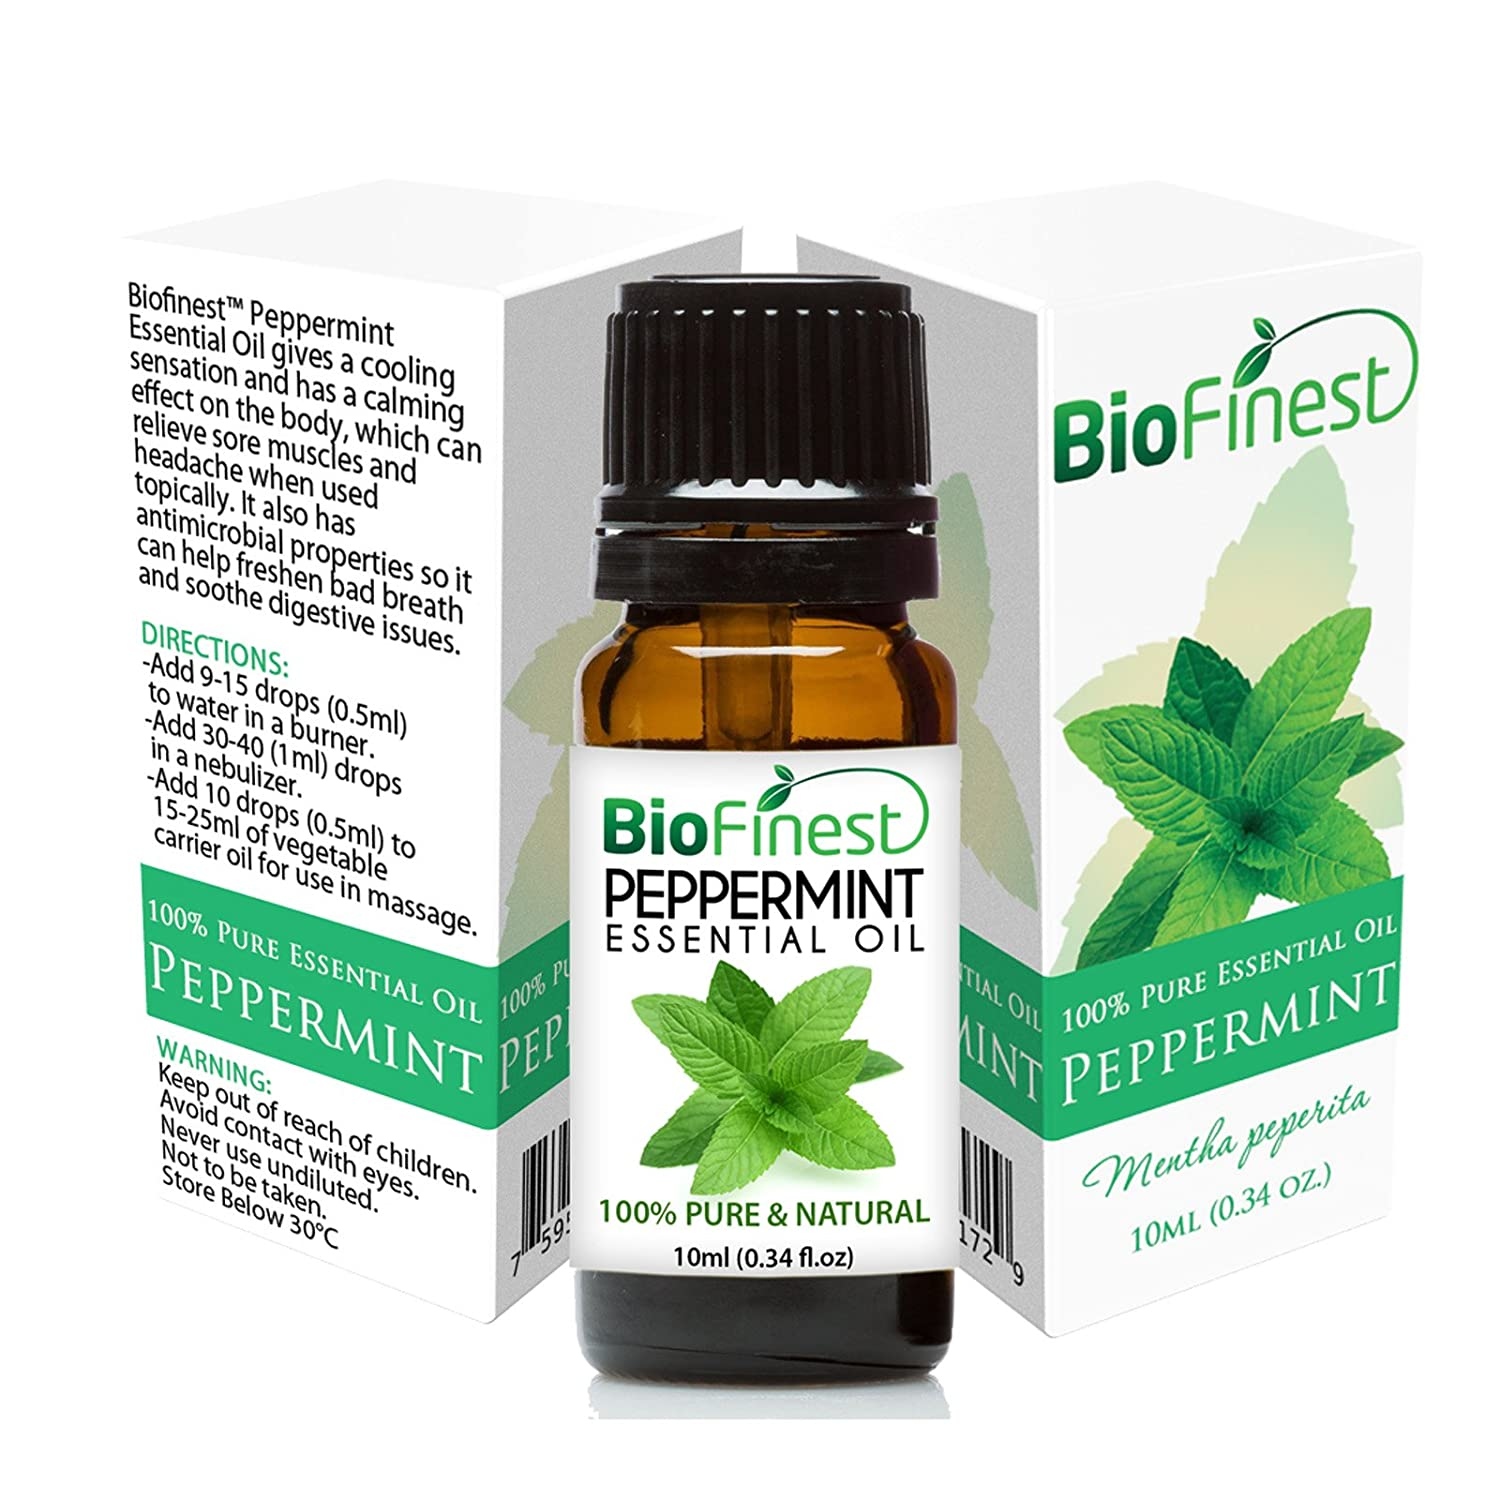 Peppermint Essential Oil - 100% Pure Undiluted - Therapeutic Grade - Premium Quality - Best For Aromatherapy, Headaches and Migraines Relief - Elegant Gift & Traveling Pack (10ml)